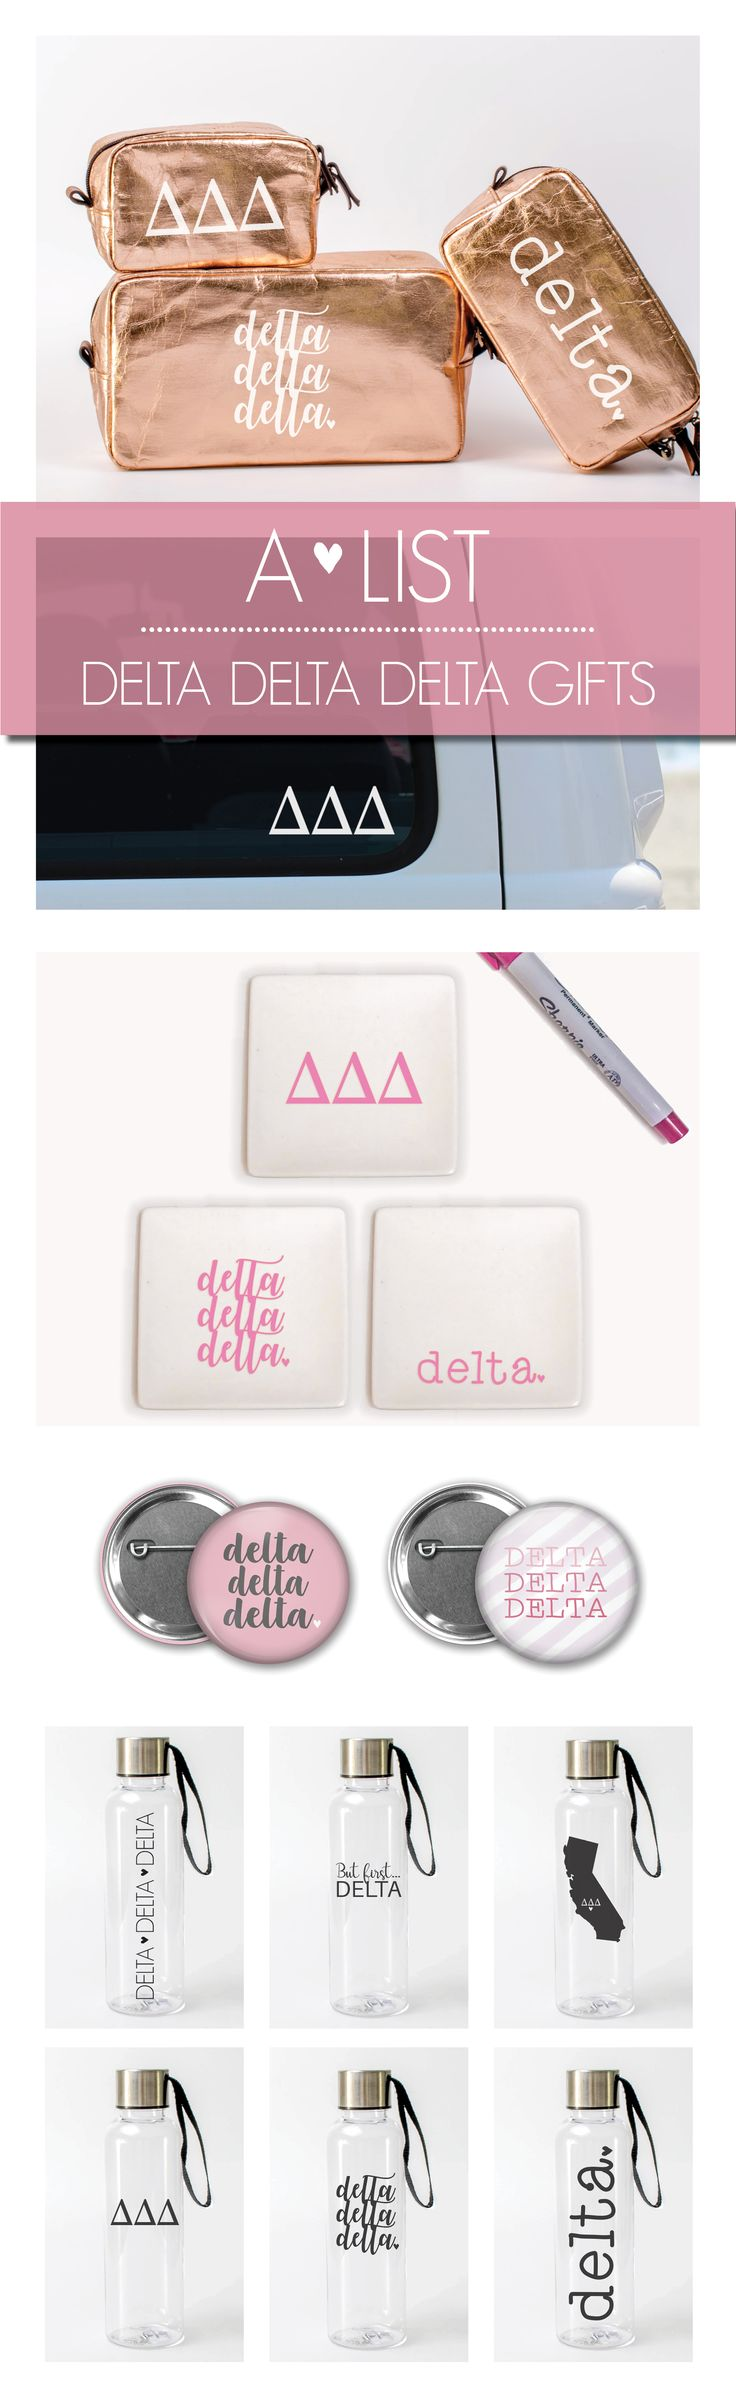 Check out these super cute Delta Delta Delta Gifts - perfect for sorority bid day, big little reveal, initiation gifts, etc.